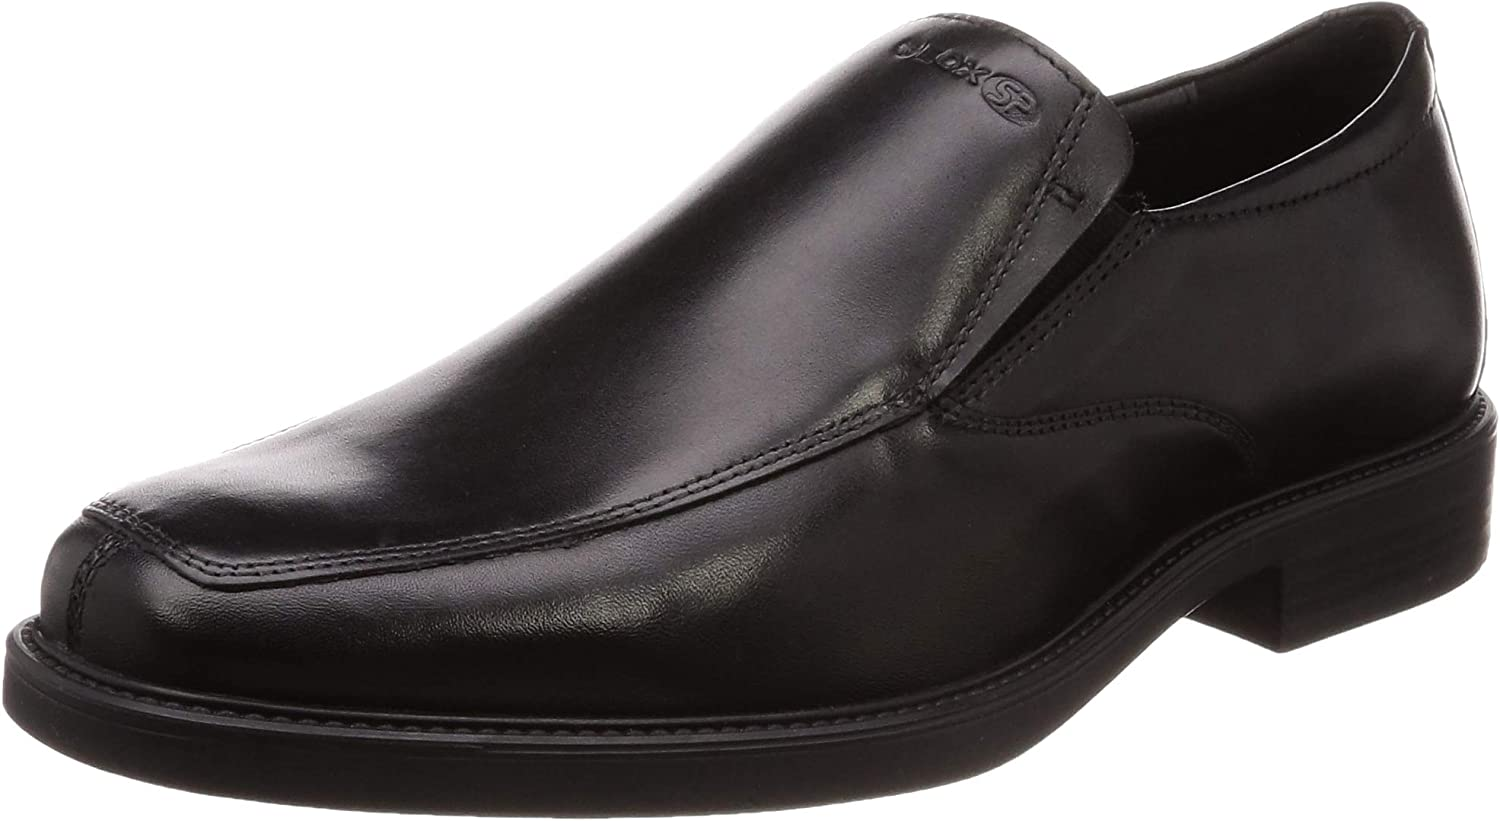 Geox BRANDOLF U844VD Men Loafer Flats,Slipper,Men′s College shoes,Loafer,Low shoes,Elegant,Business shoes,Suit shoes,Office shoes,Casual shoes